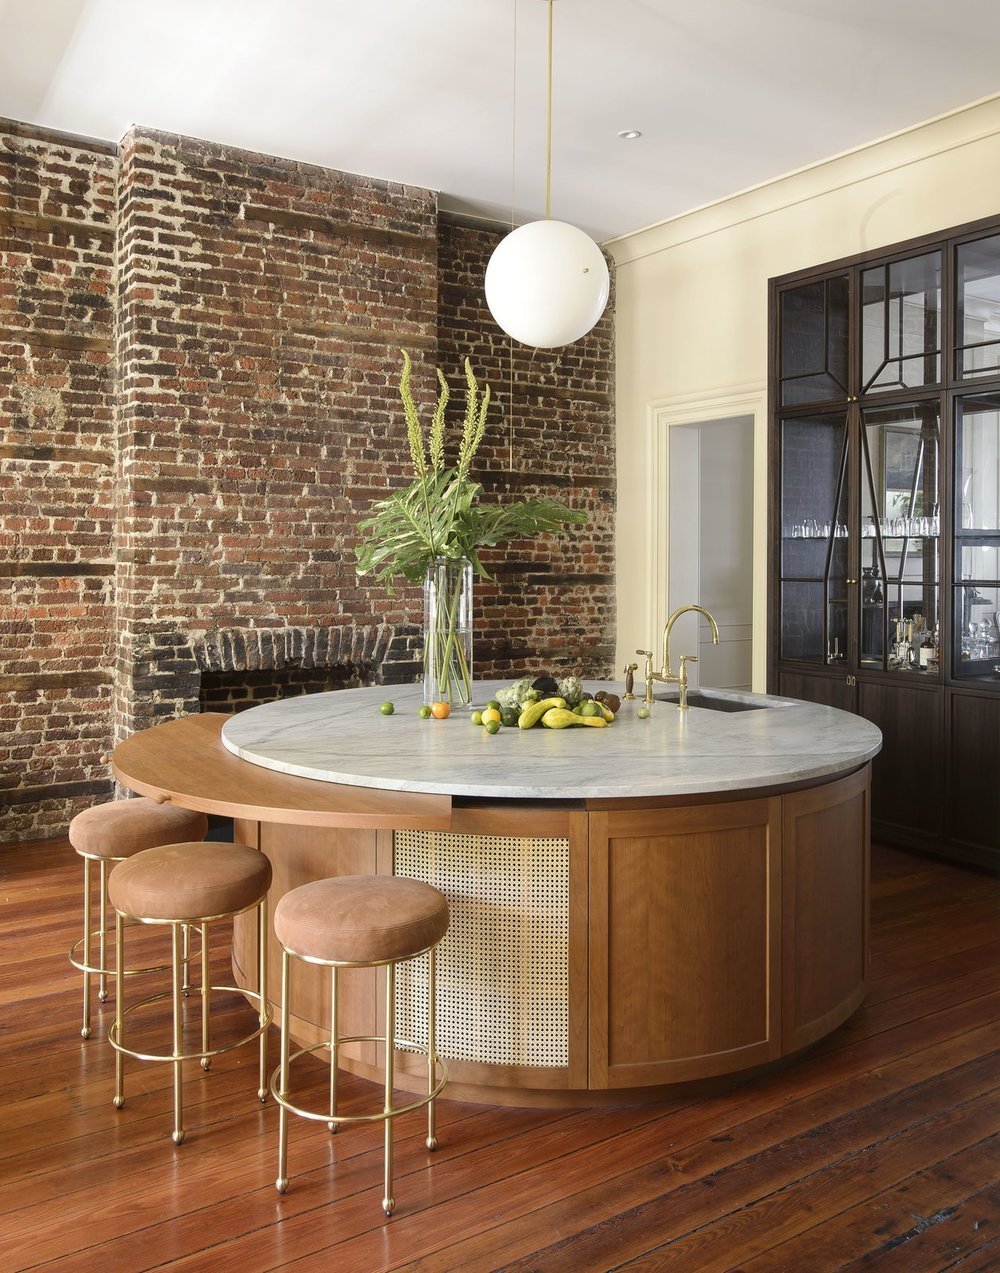 The house features a circular, marble-topped wet bar with Lawson Fenning Orsini stools.  Photo Courtesy of Matthew Williams